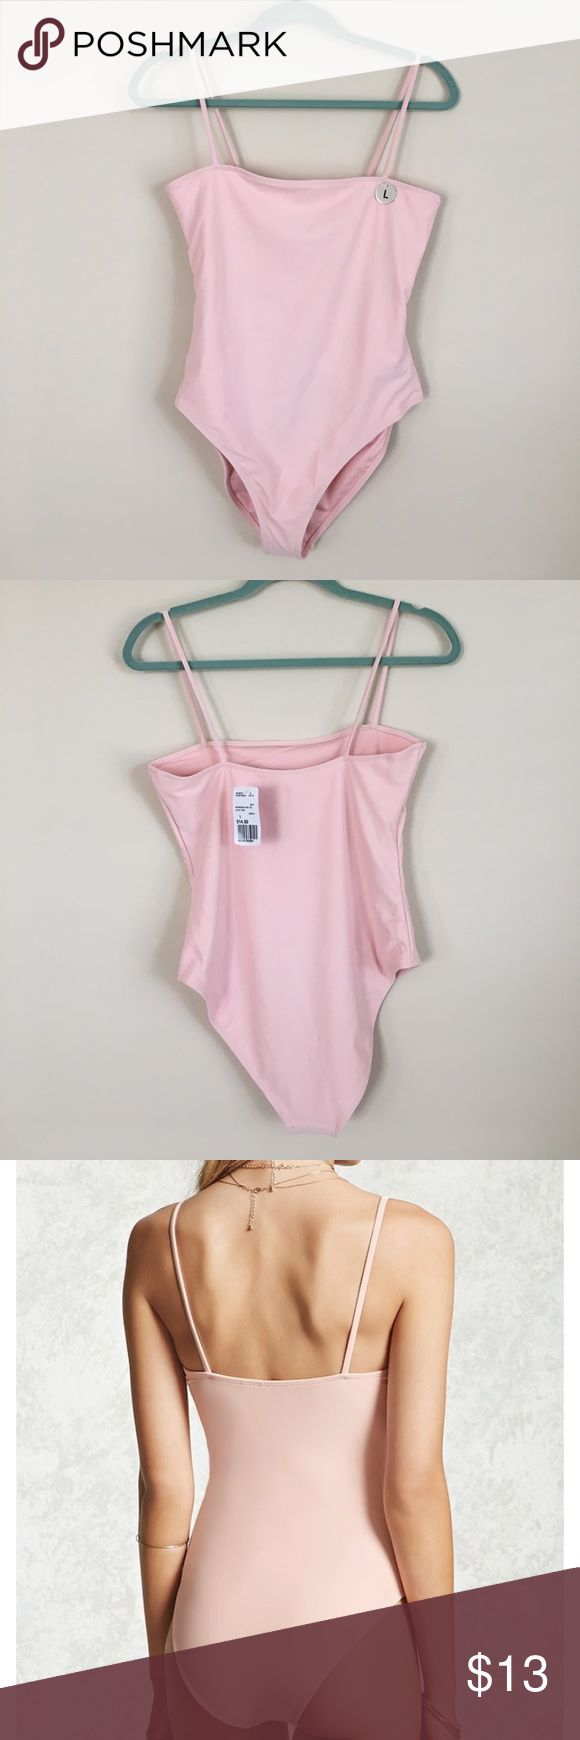 Light Pink Cami Swimsuit NWT Light Pink Cami swimsuit from Forever 21! Never been worn. Size large. Selling because it's slightly too big for me & it was final sale. High cut and so cute! Forever 21 Swim One Pieces